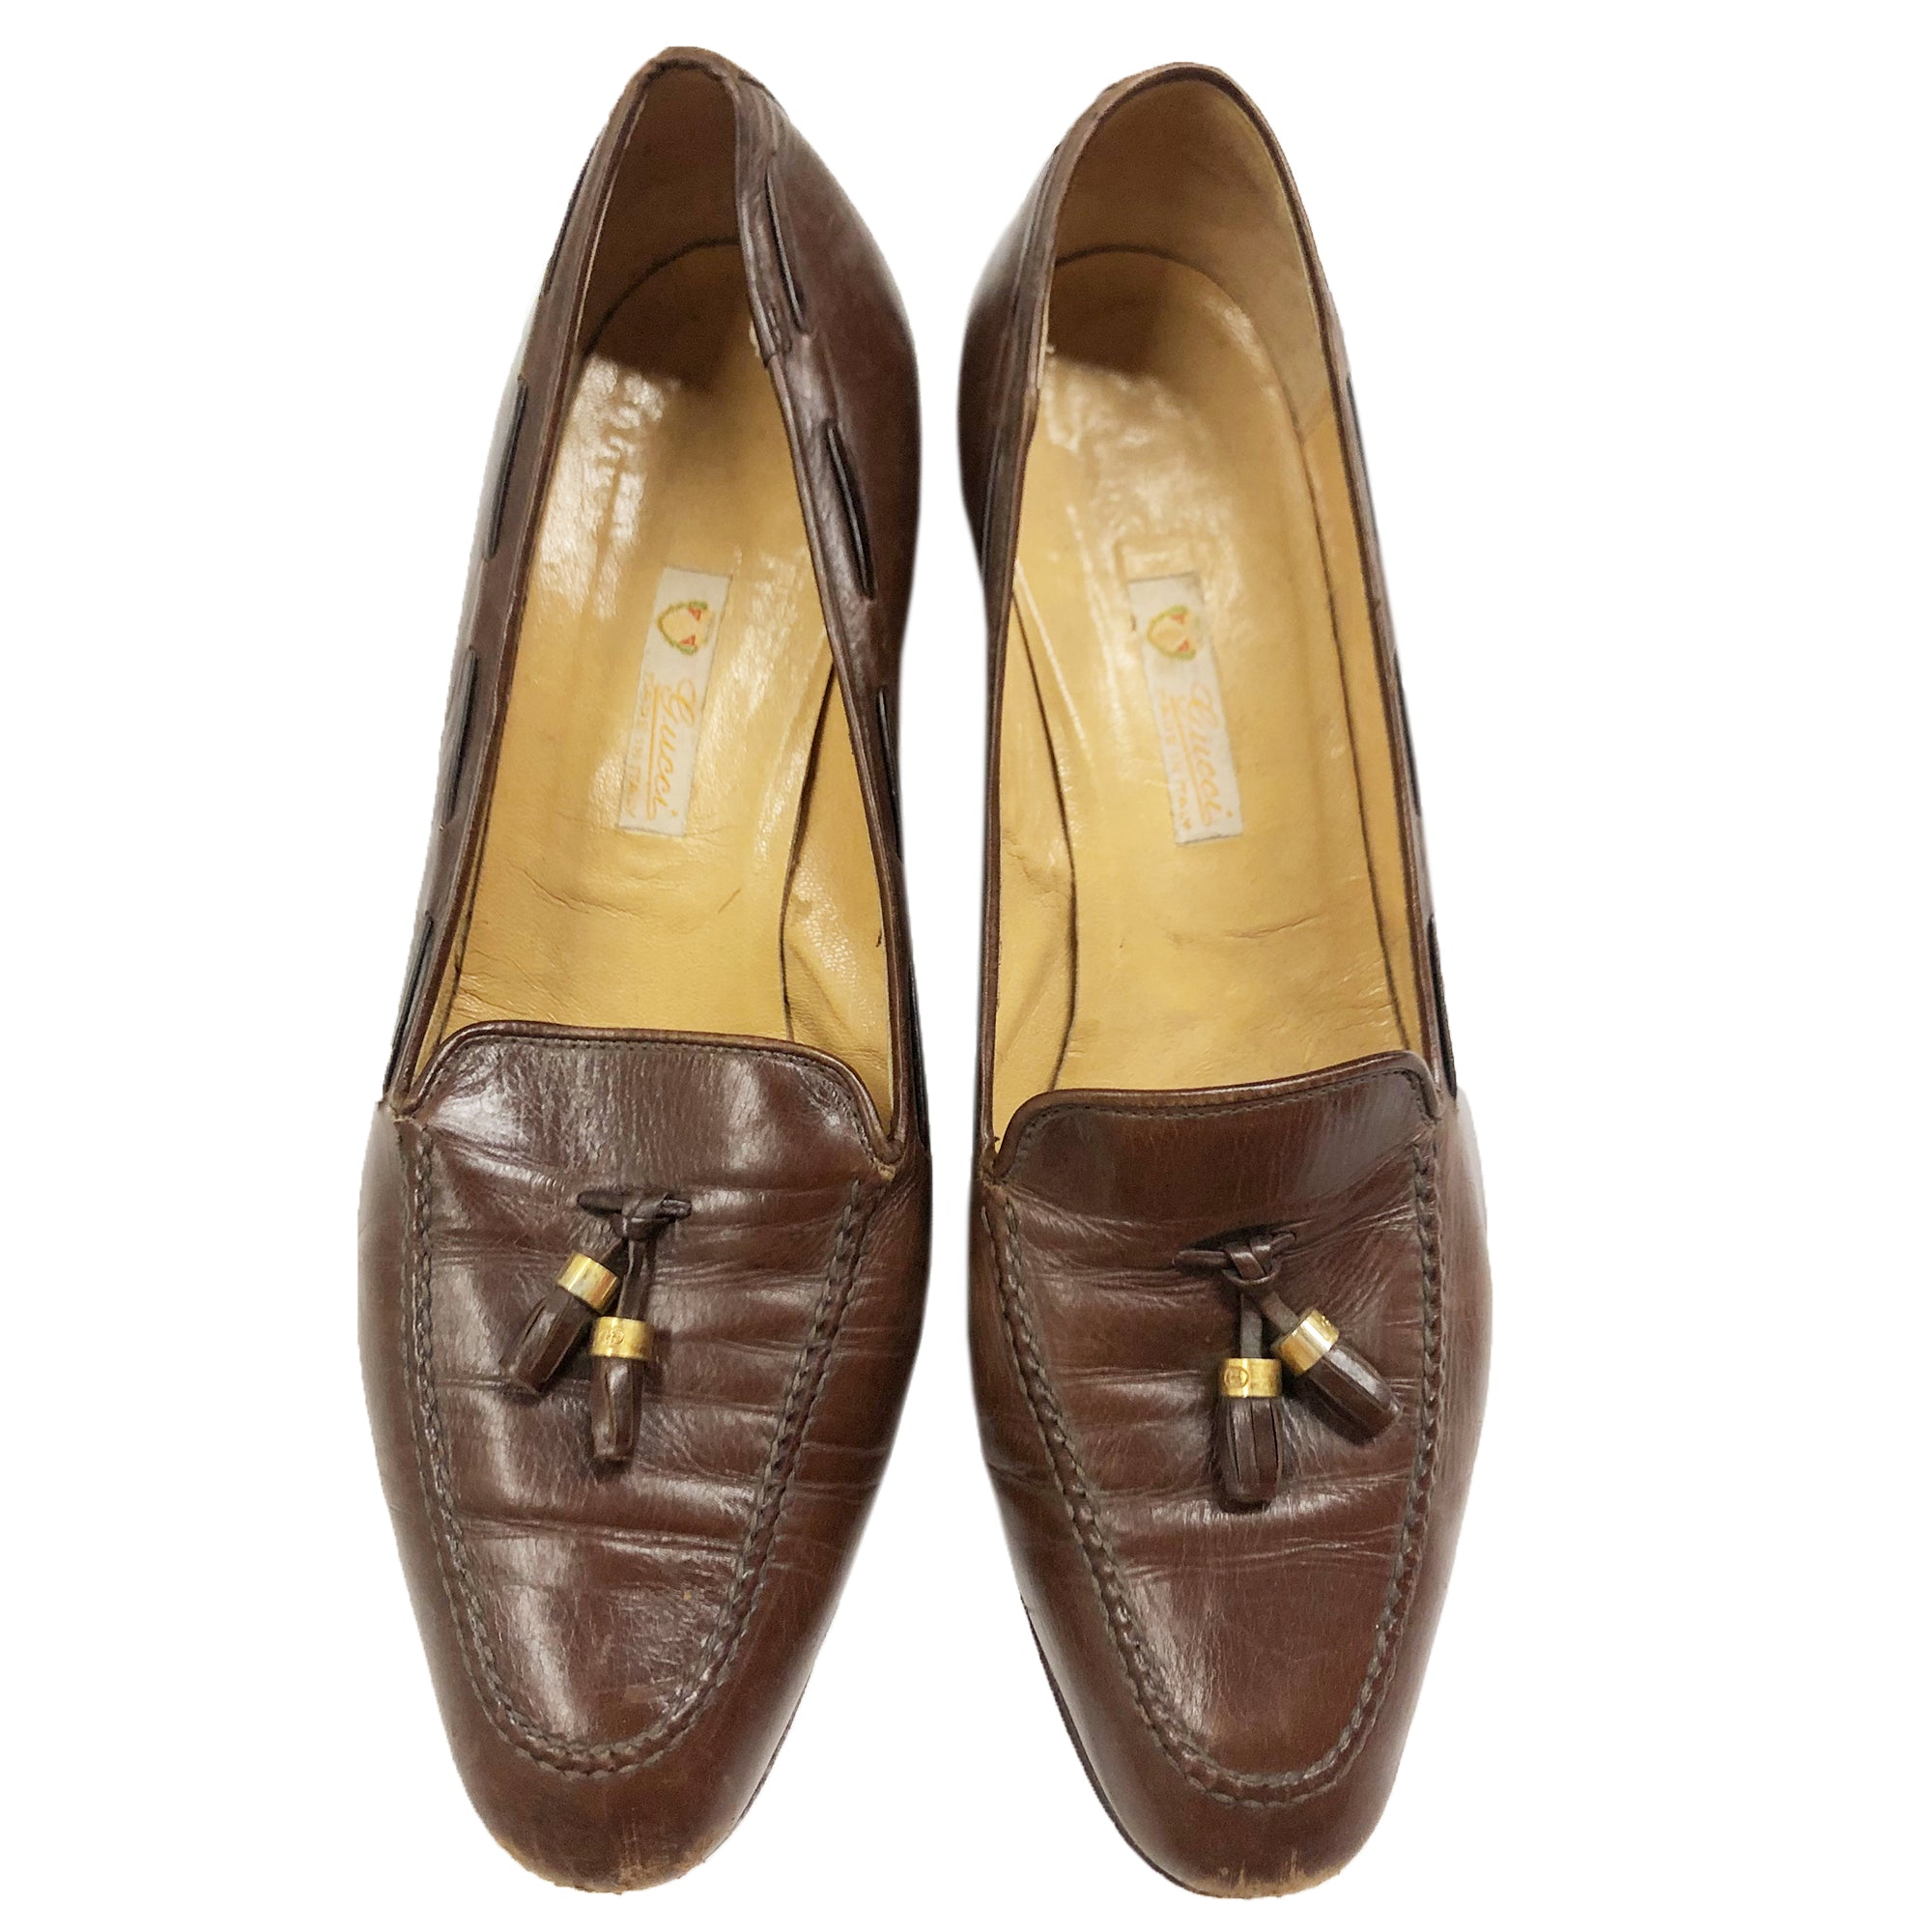 Gucci Leather Loafers (Brown) EU 40.5 UK 8